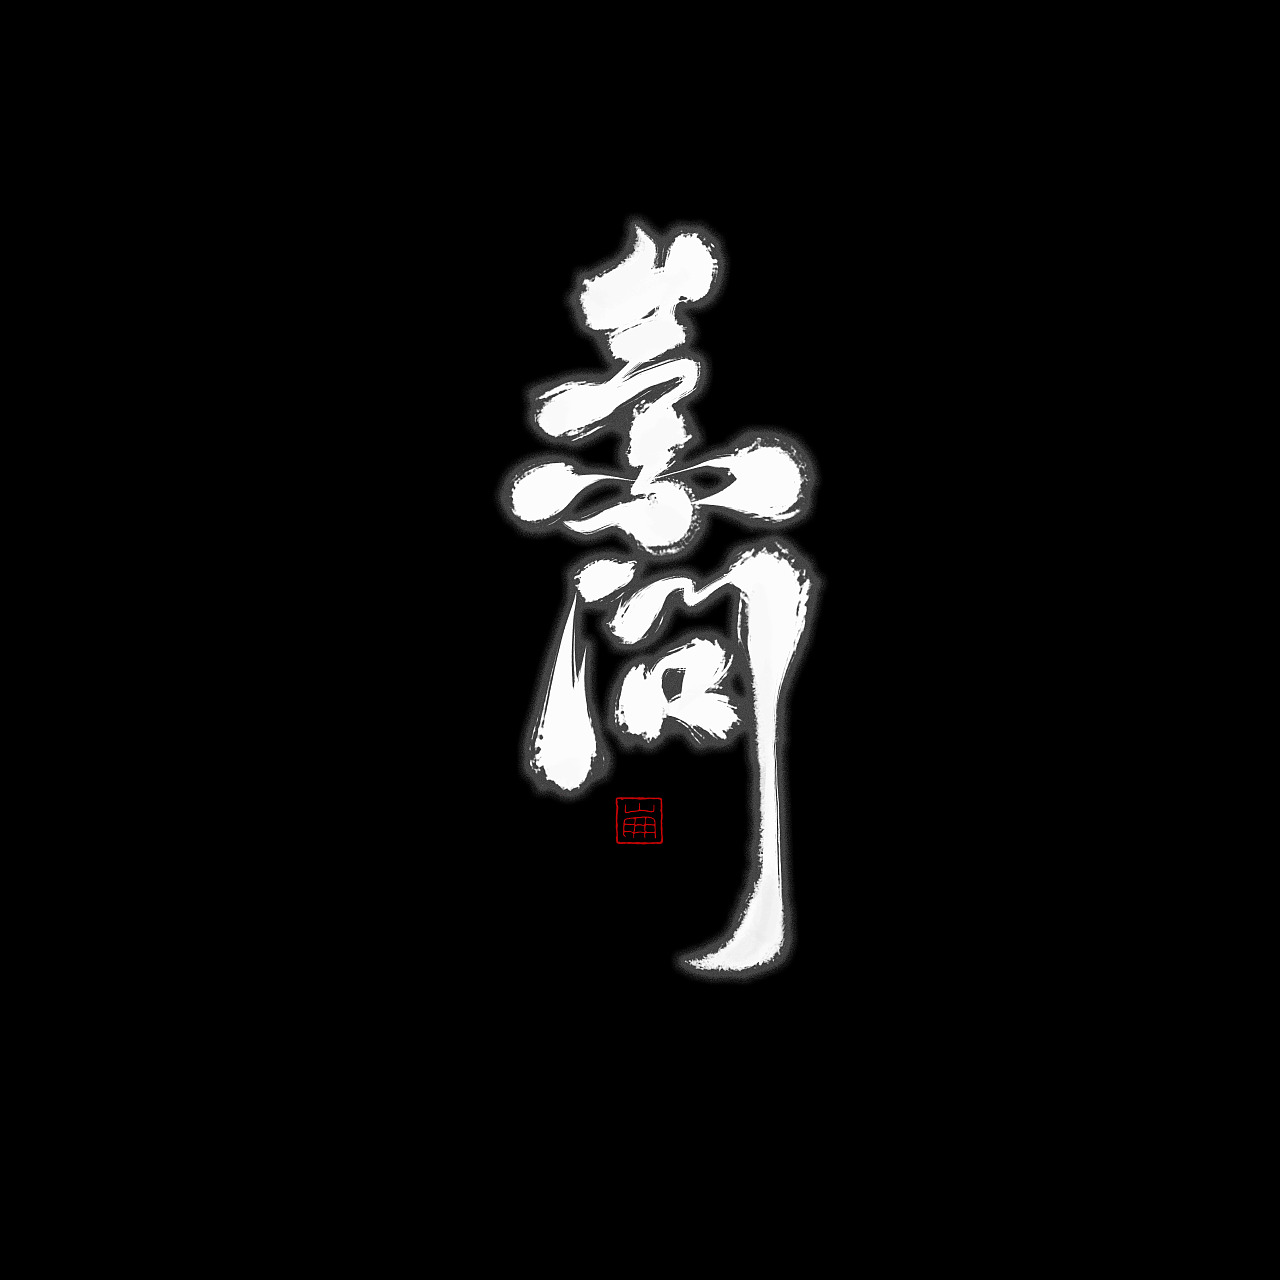 8P Chinese traditional calligraphy brush calligraphy font style appreciation #148